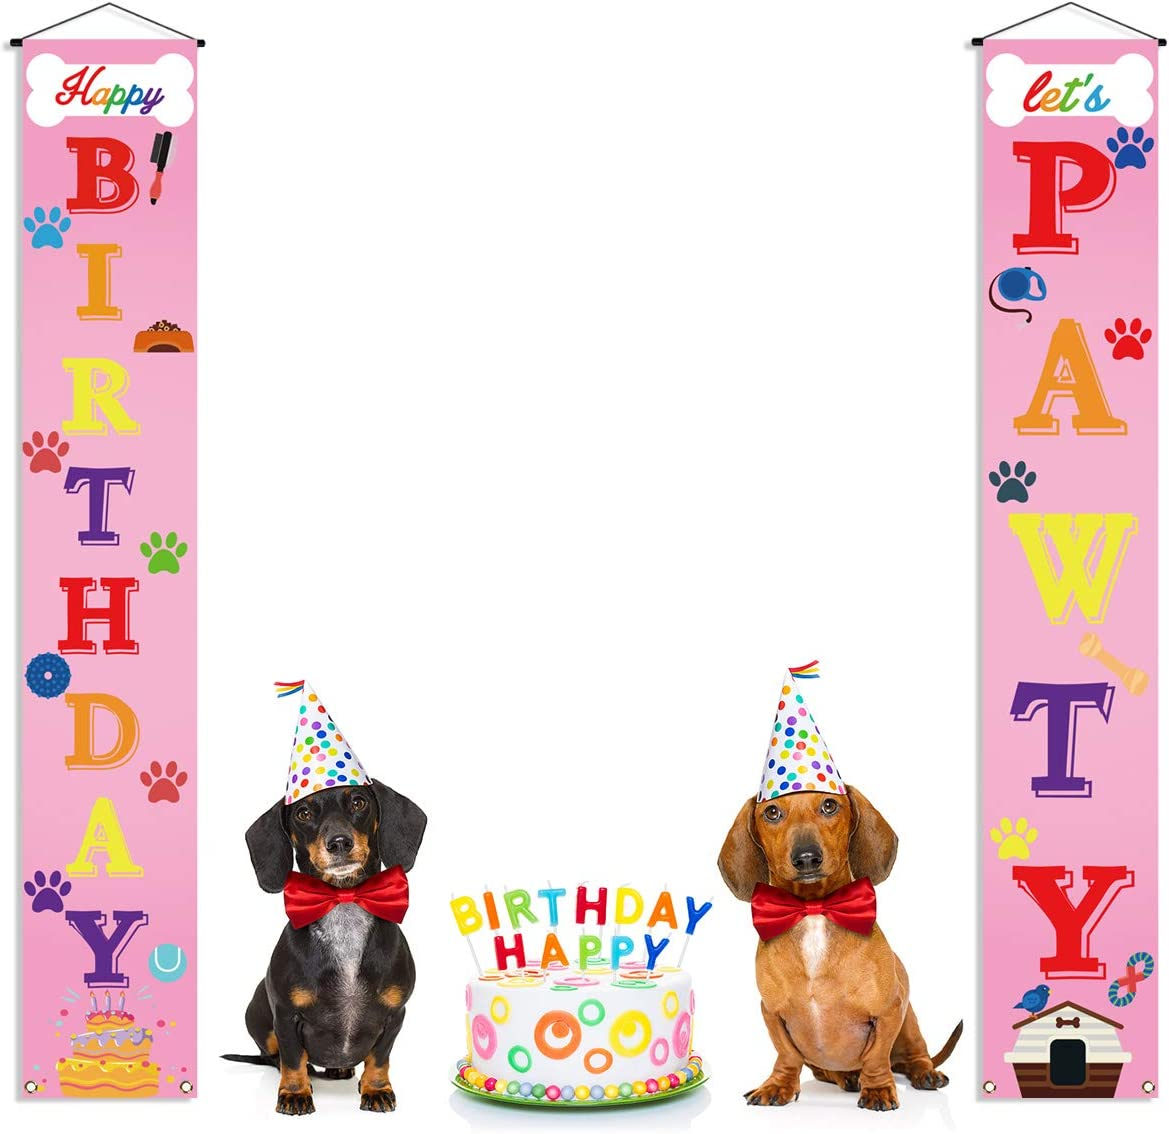 """8 FLAGS 3.5"""" x 2.5"""" DOG BIRTHDAY BANNER GORGEOUS PARTY BUNTING PINK AND GOLD"""